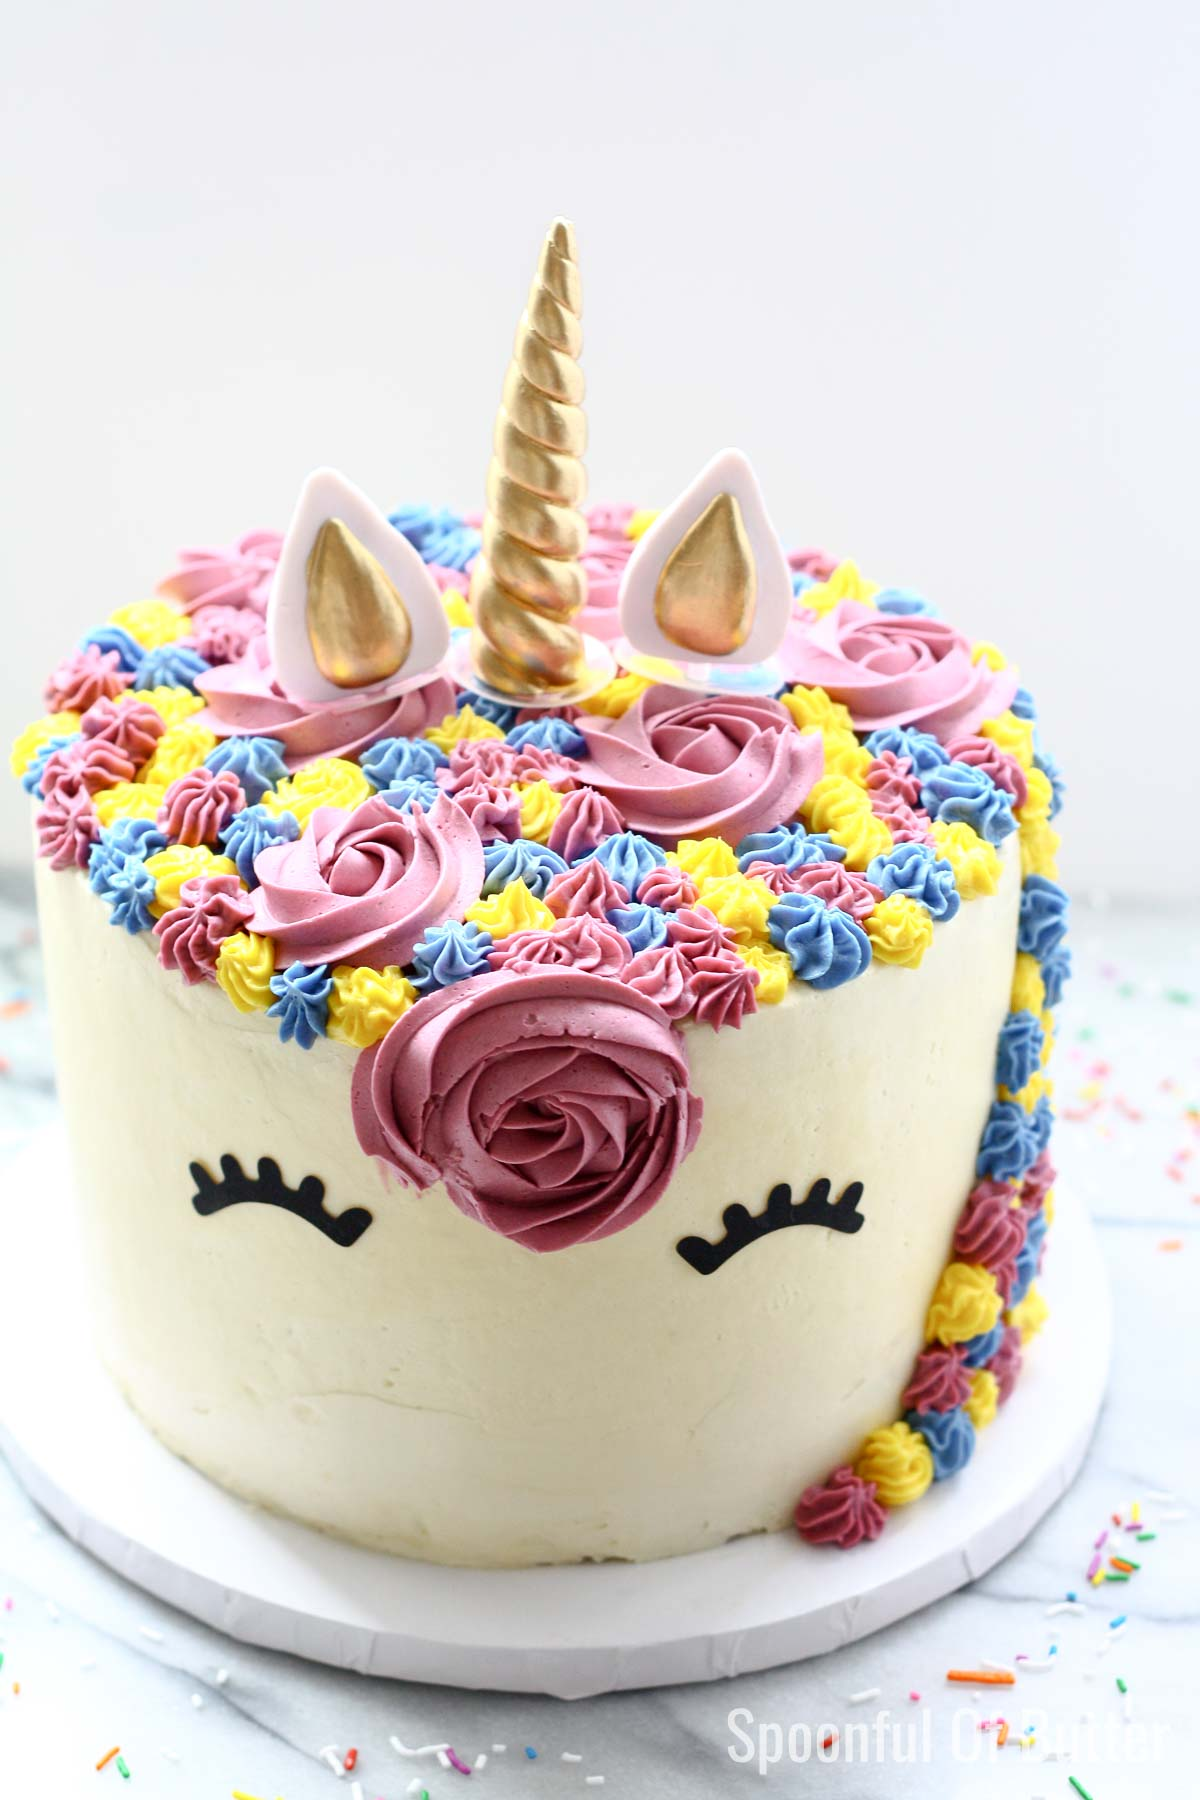 A Unicorn Birthday Cake